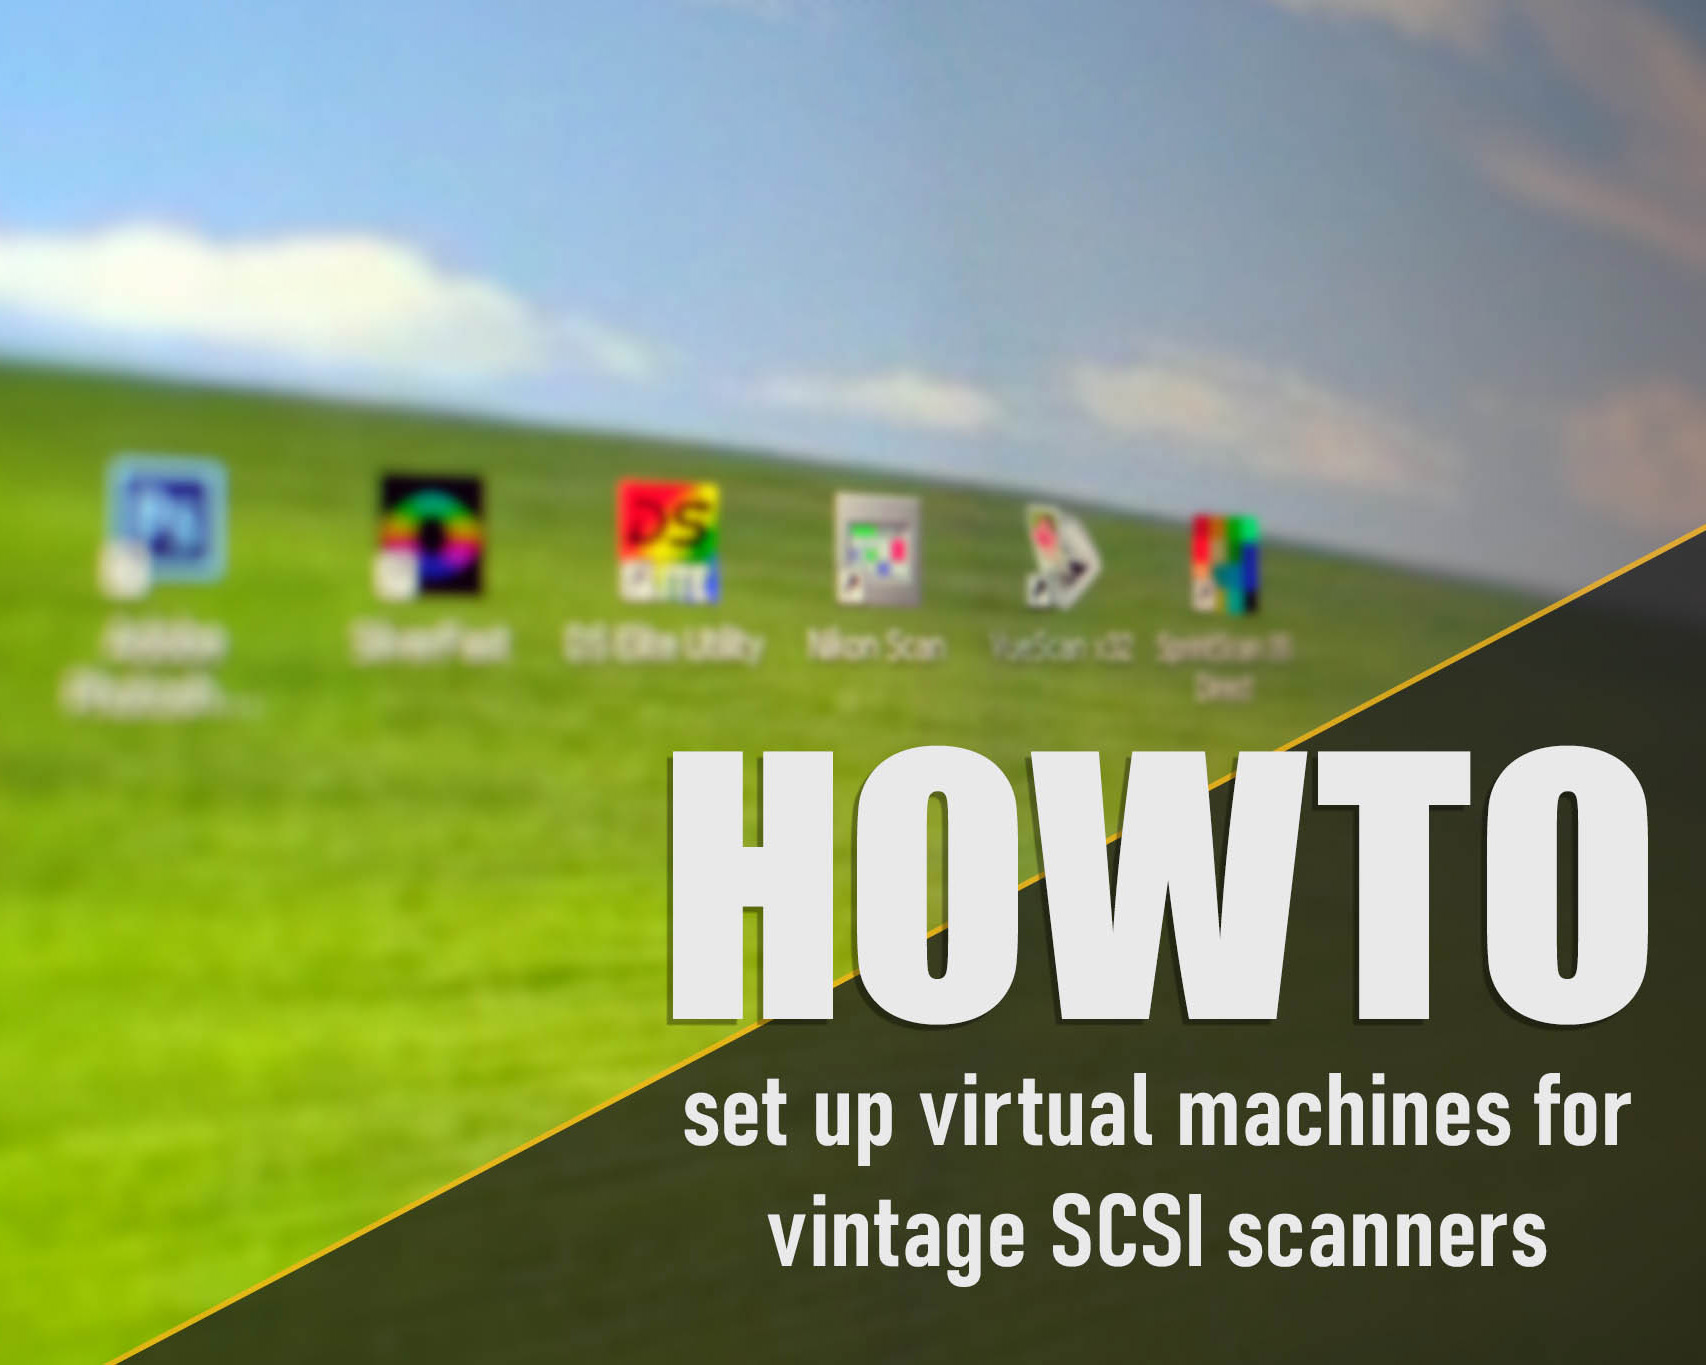 How to set up a virtual machine for vintage SCSI scanners